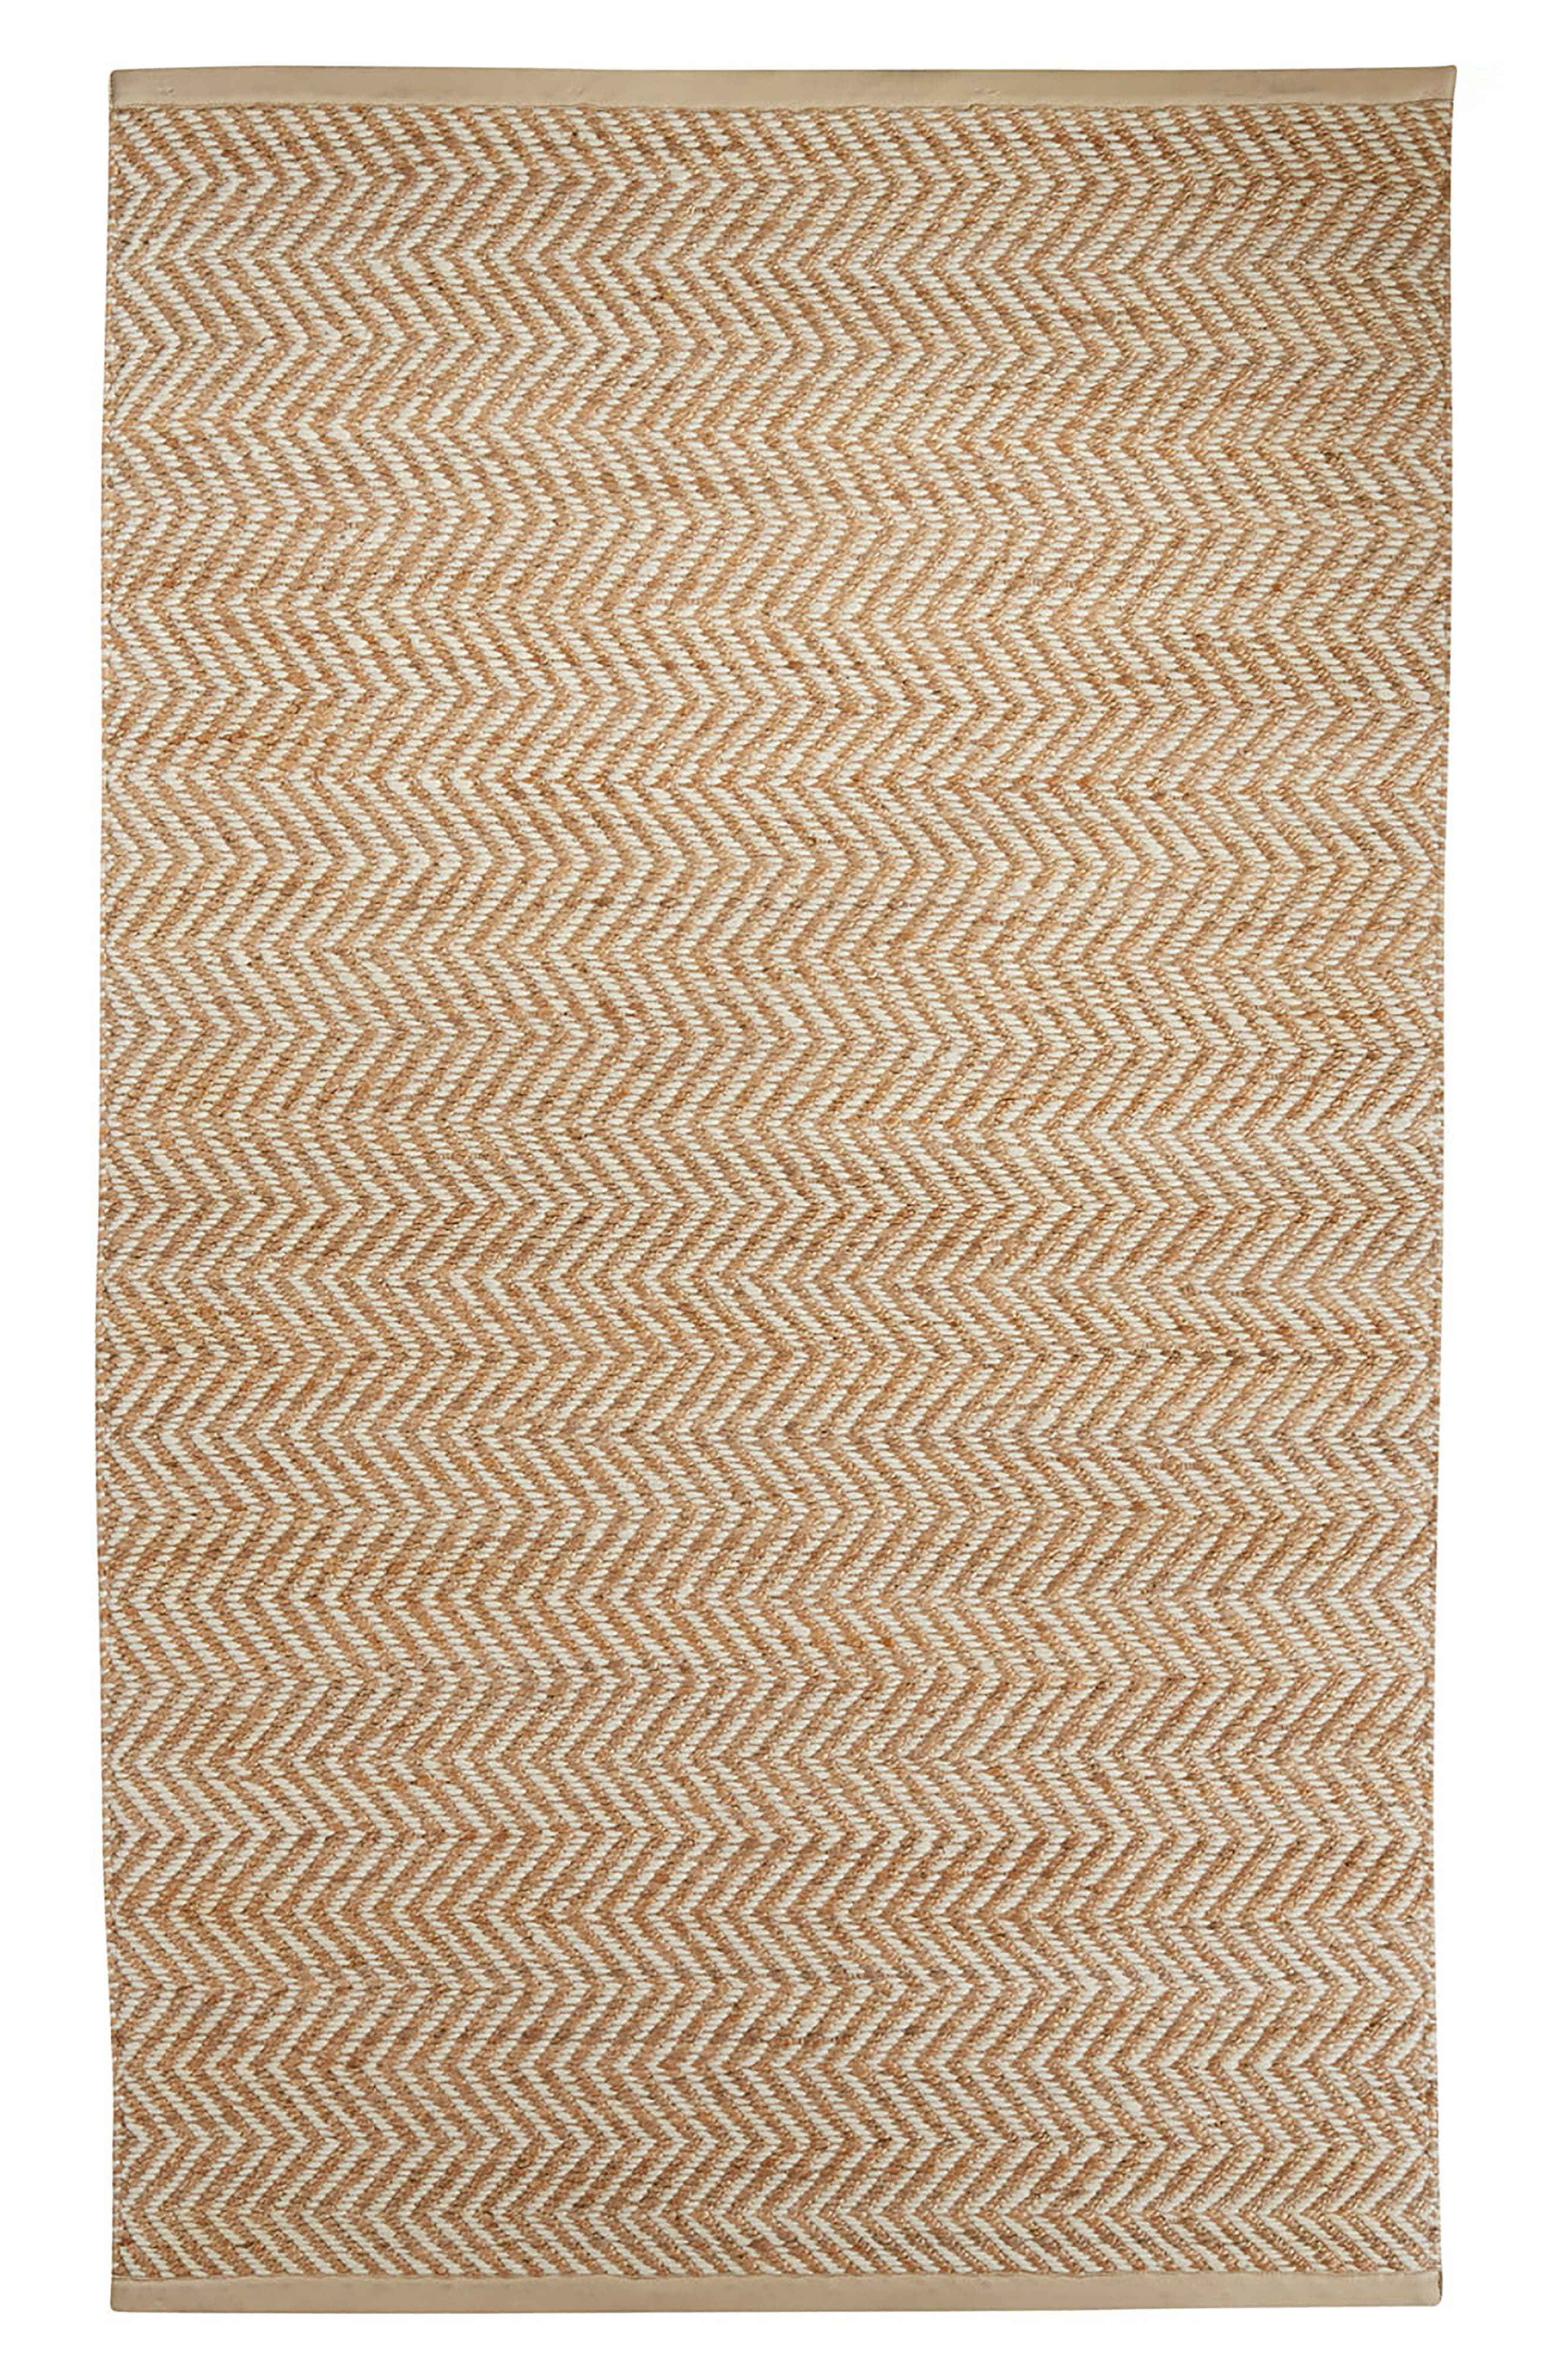 Malia Rug,                         Main,                         color, 250